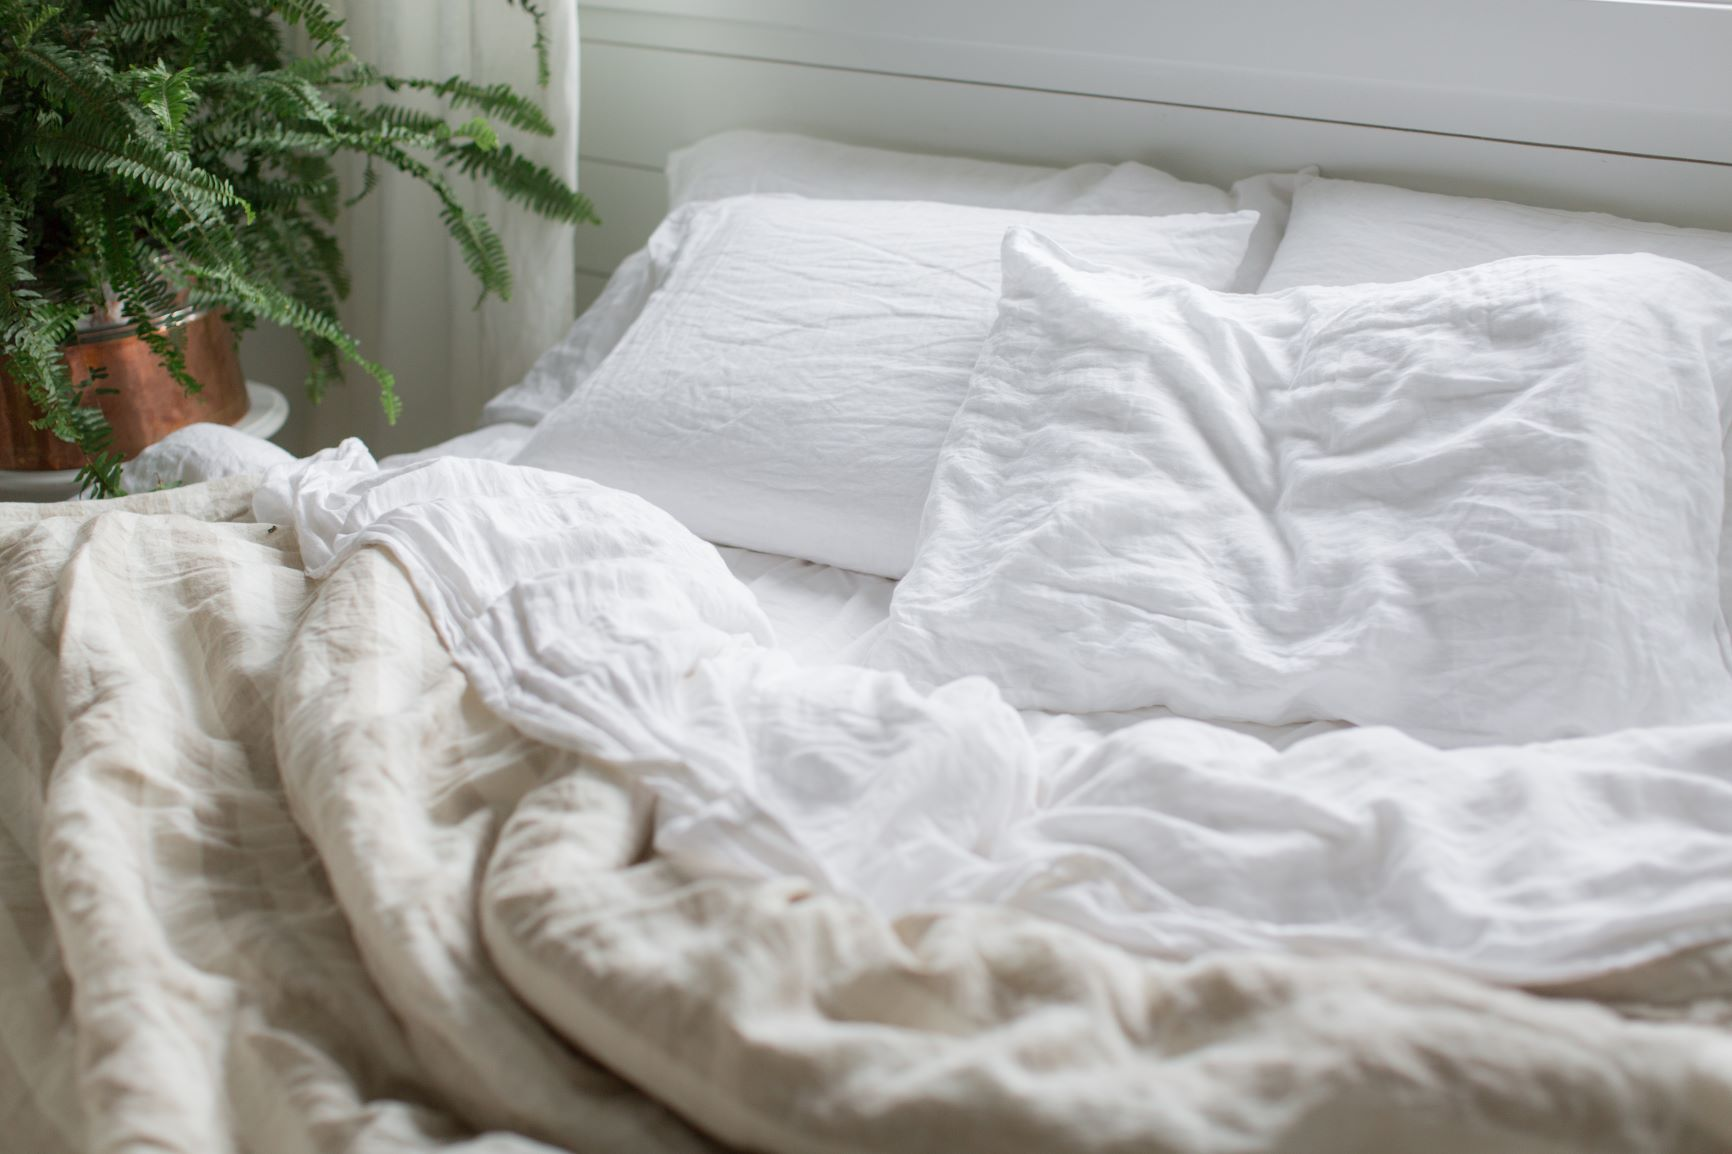 Buying Guide: Best Mattresses for Hot Sleepers